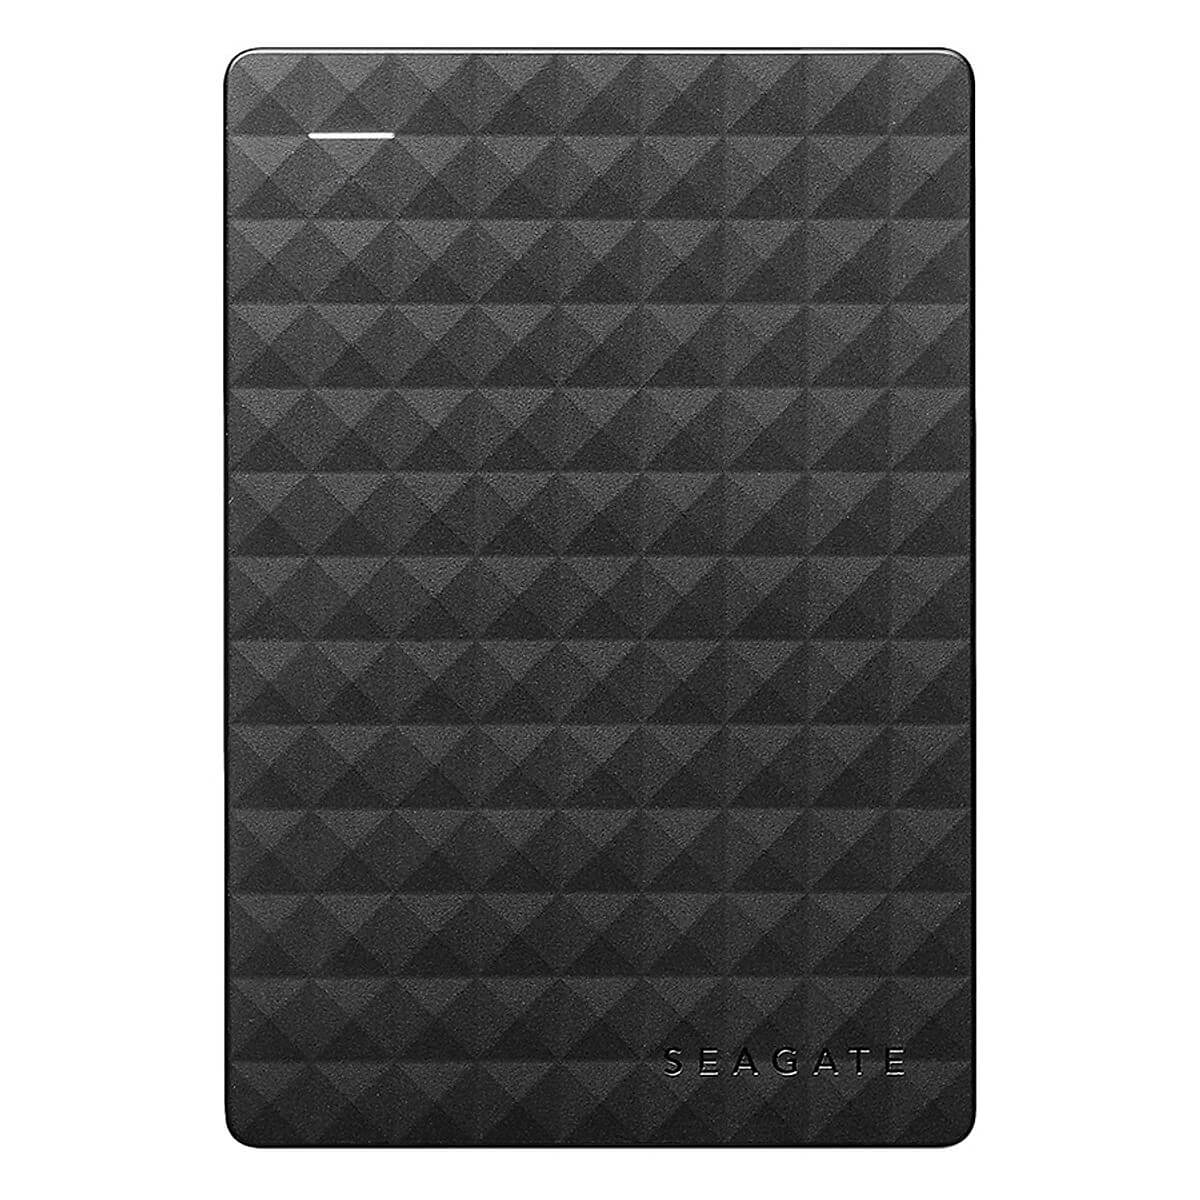 o cung di dong Seagate Expansion Portable 1.5TB